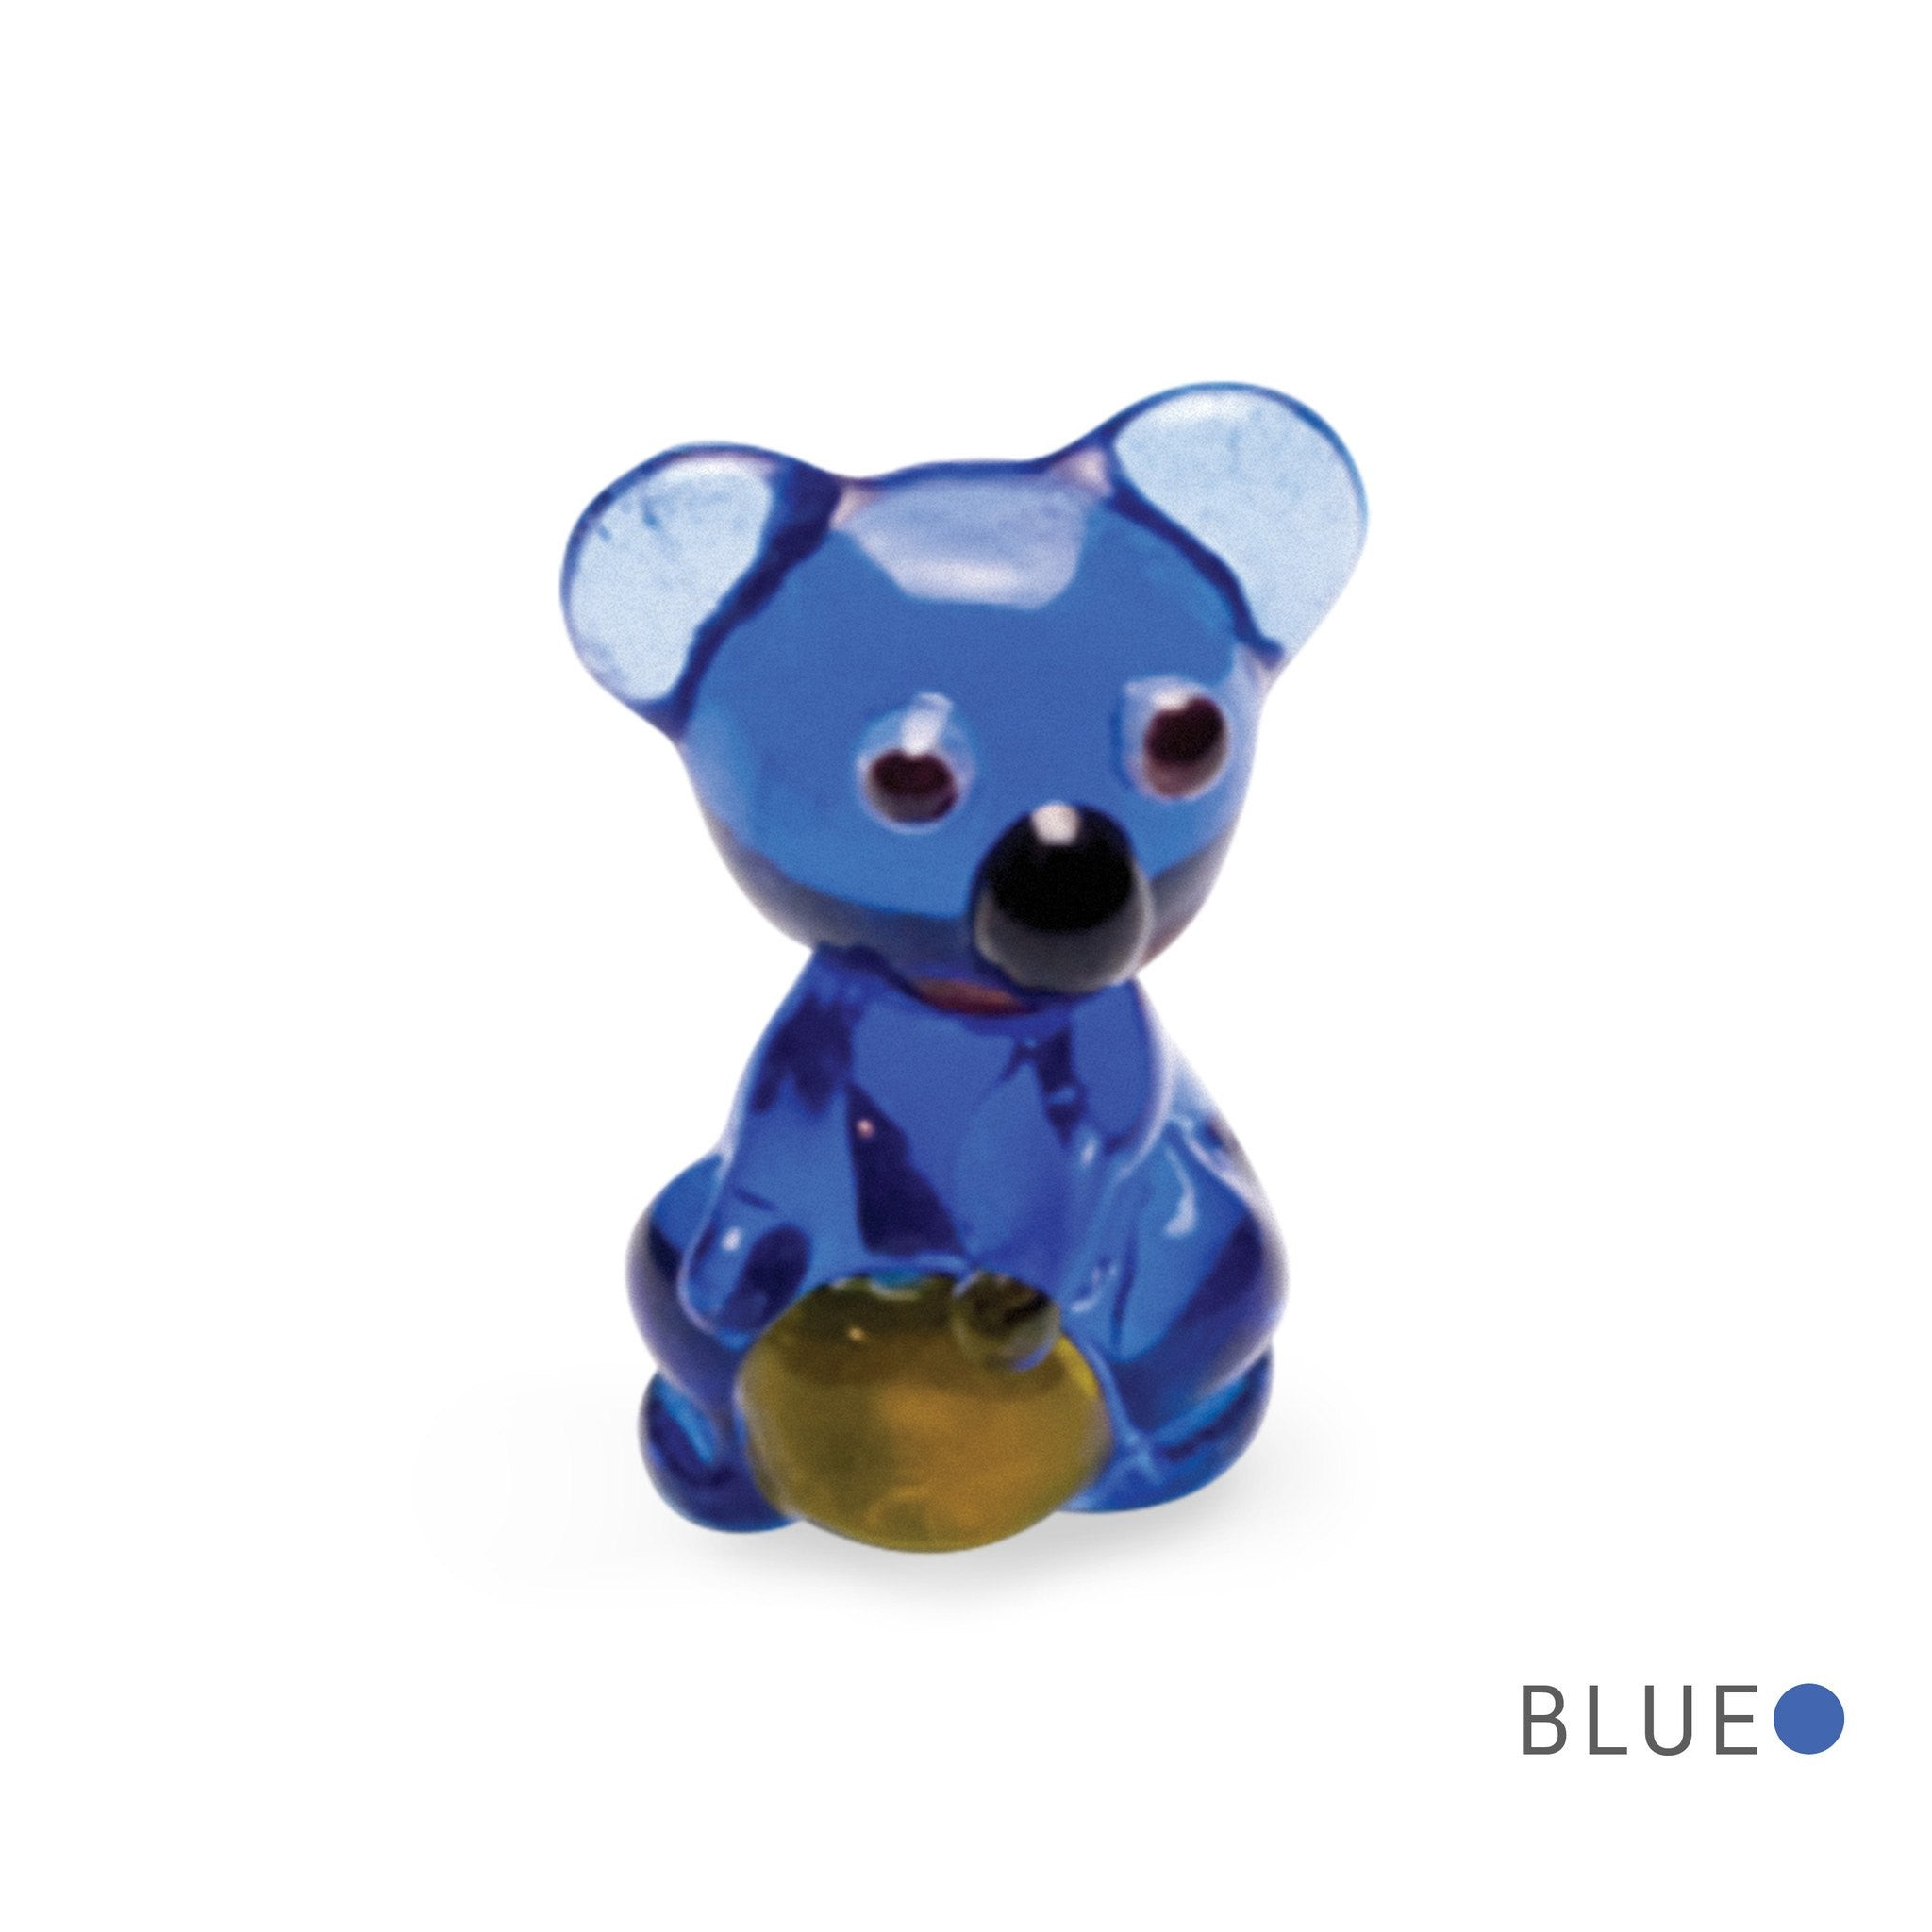 Kia the Koala (in Tynies Collector's Frame) Miniature glass figurines